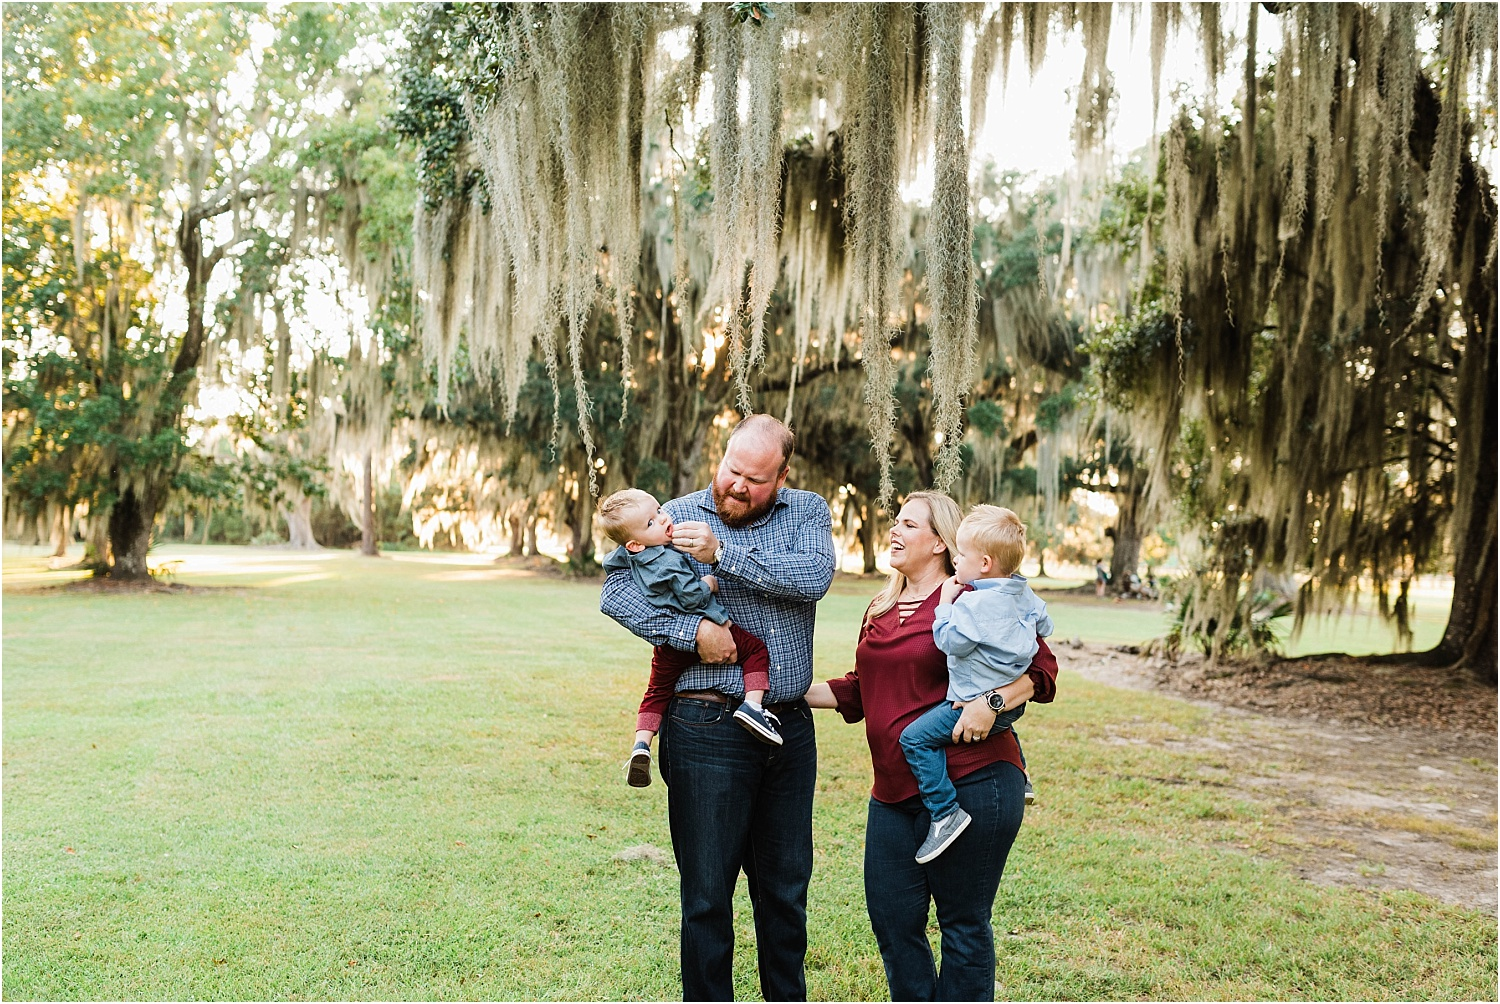 Smalley Family Fall 2019-Fountainbleau-State-Park-Family-Photos_Gabby Chapin Photography_0003_BLOG.jpg